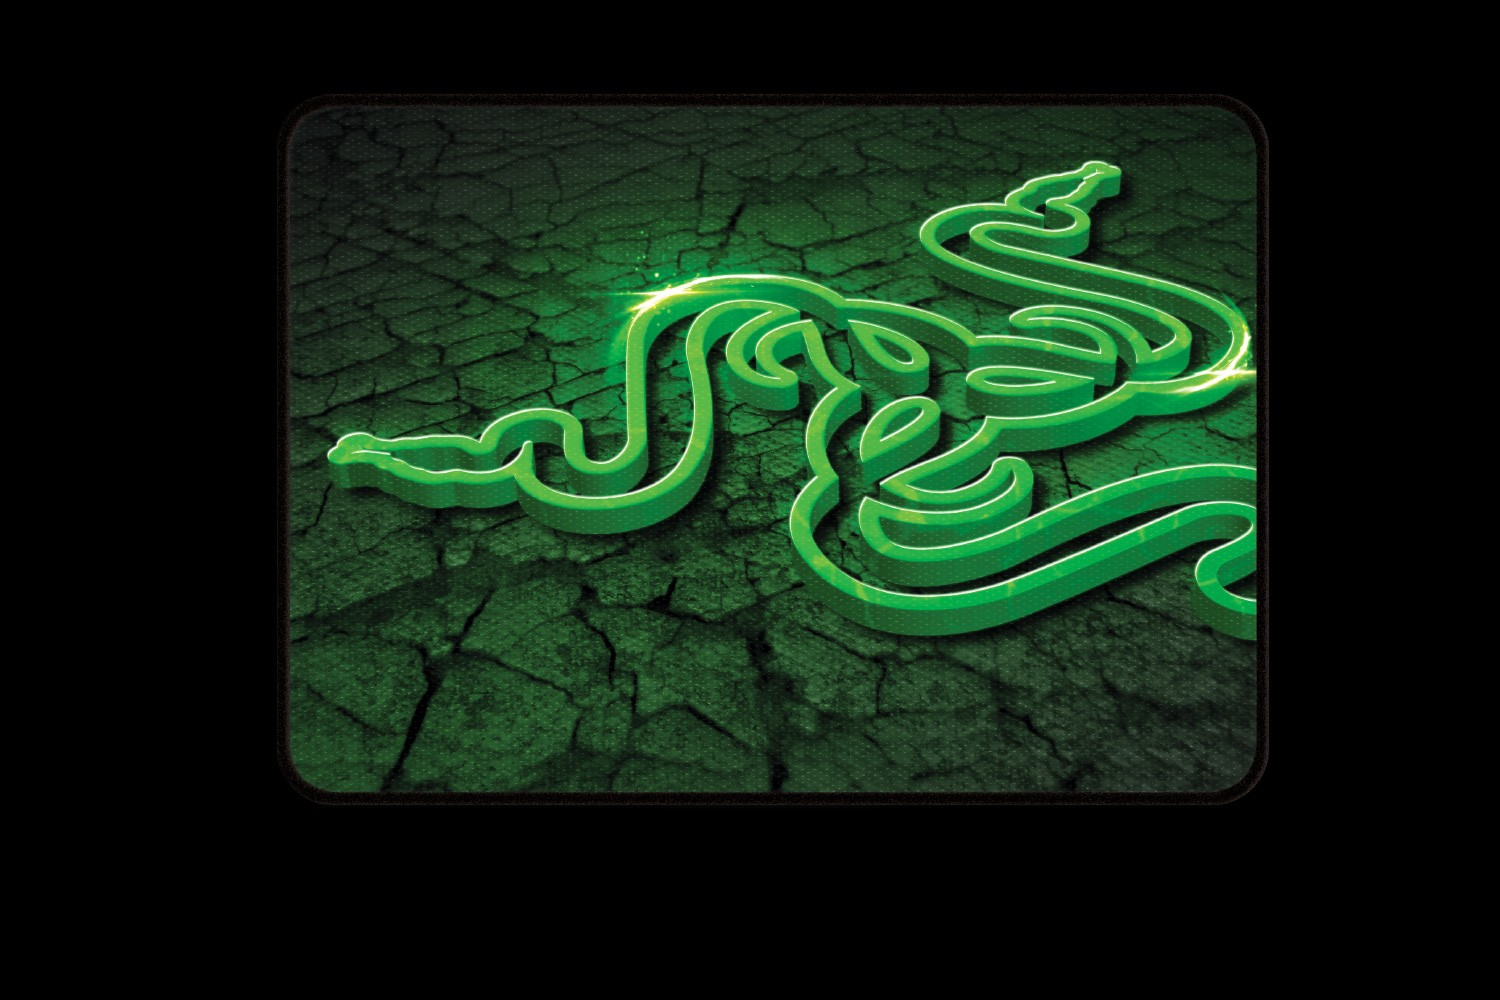 Razer Goliathus Control Fissure Medium surface